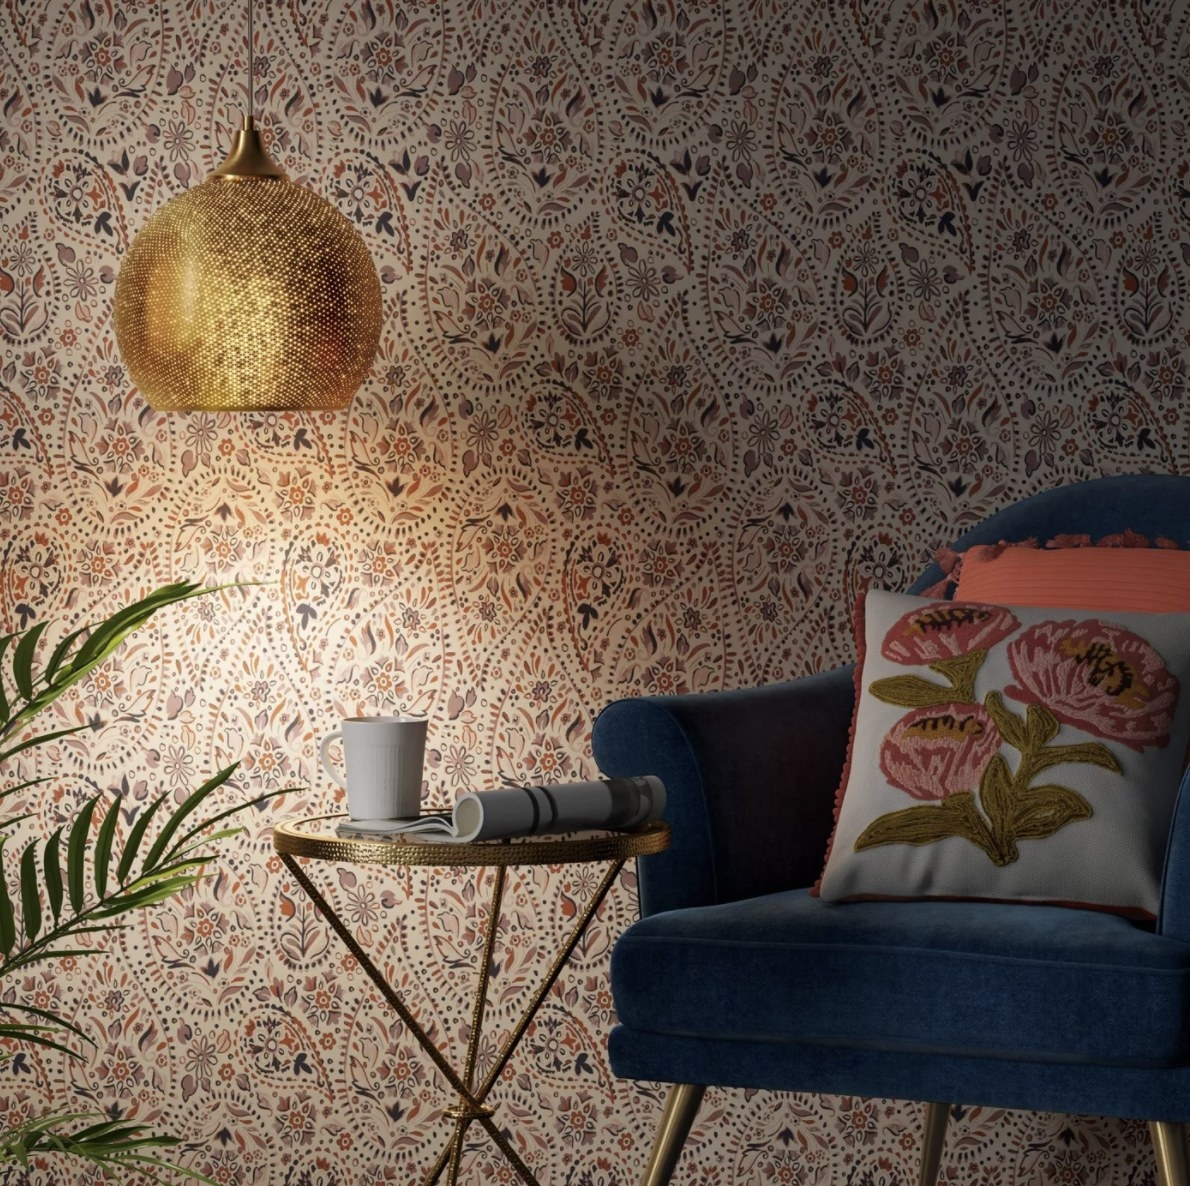 The gold hanging lamp is in a dimly lit room and gives off a beautiful ambient light